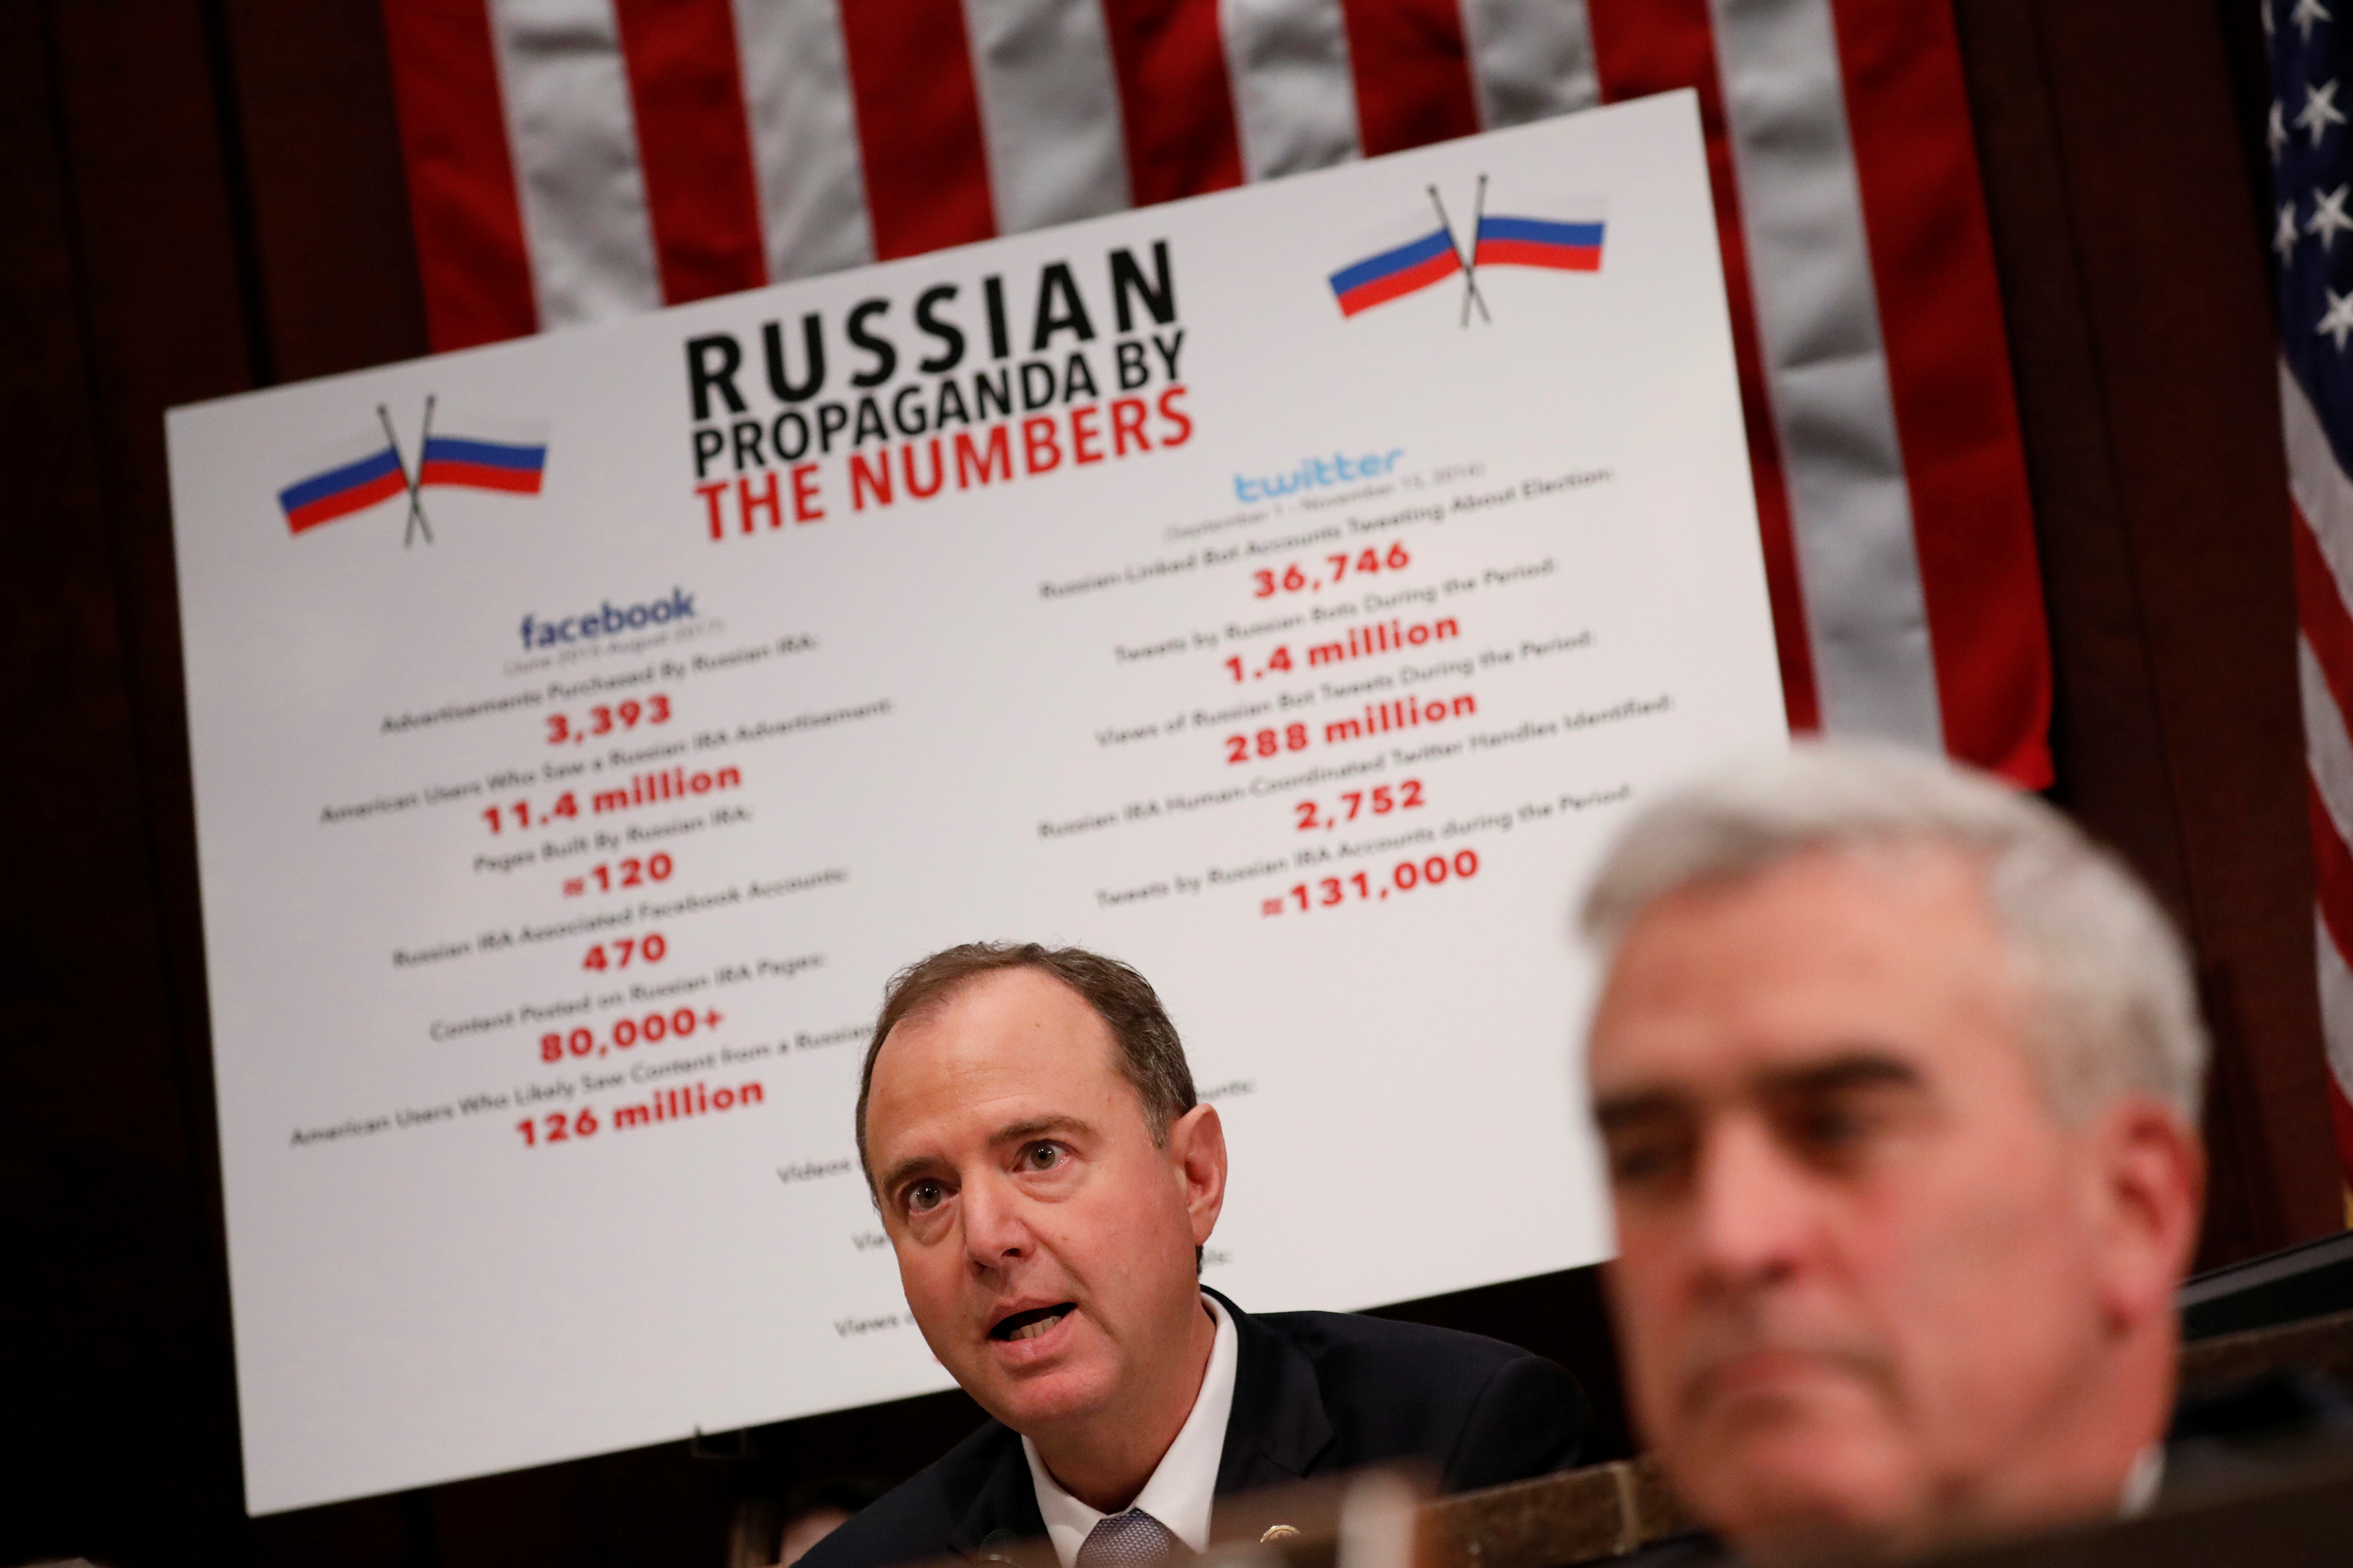 Rep. Adam Schiff (D-CA) asks questions, as executives appear before the House Intelligence Committee to answer questions related to Russian use of social media to influence U.S. elections, on Capitol Hill in Washington, U.S., November 1, 2017. REUTERS/Aaron P. Bernstein